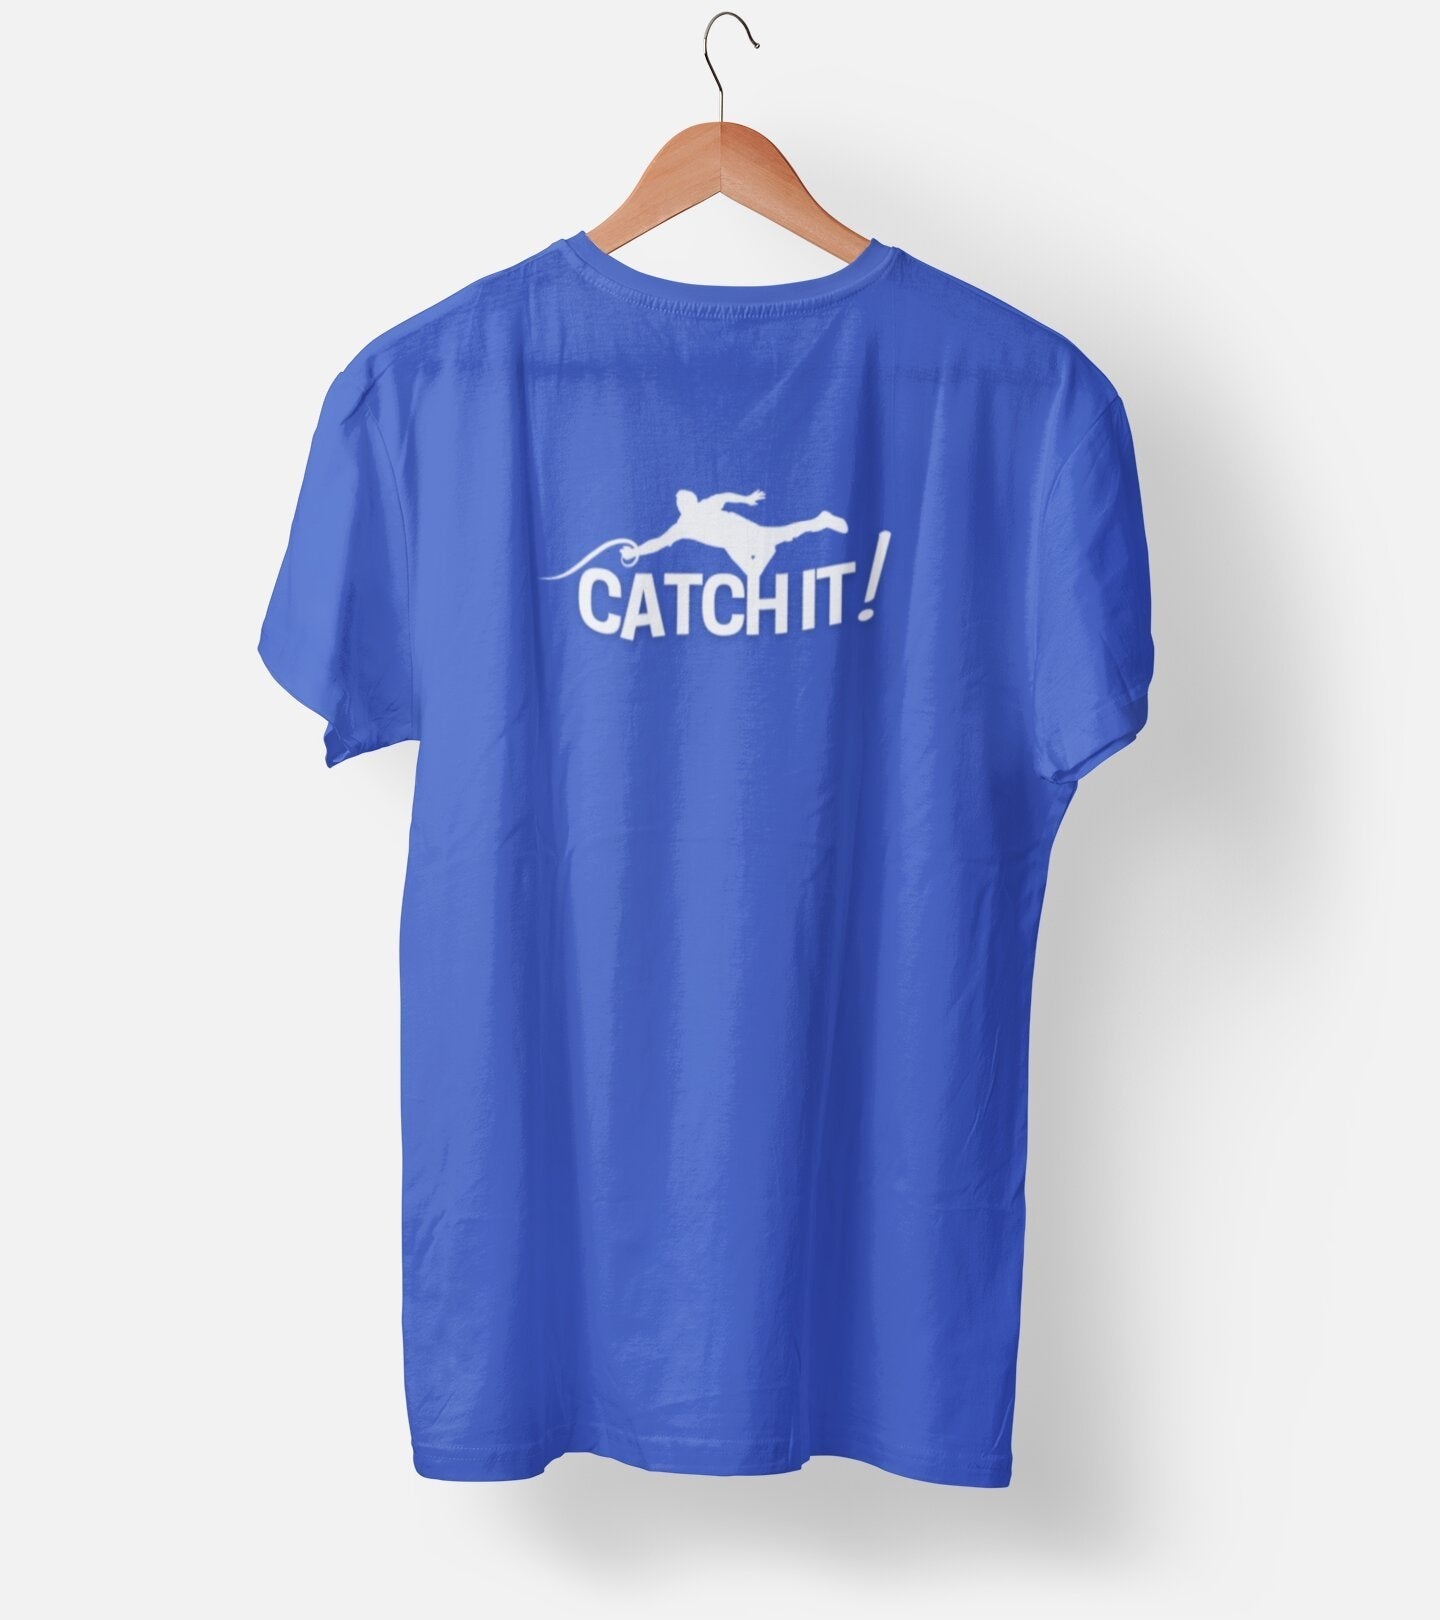 Catch It! Cricket Fan Men's T-Shirt